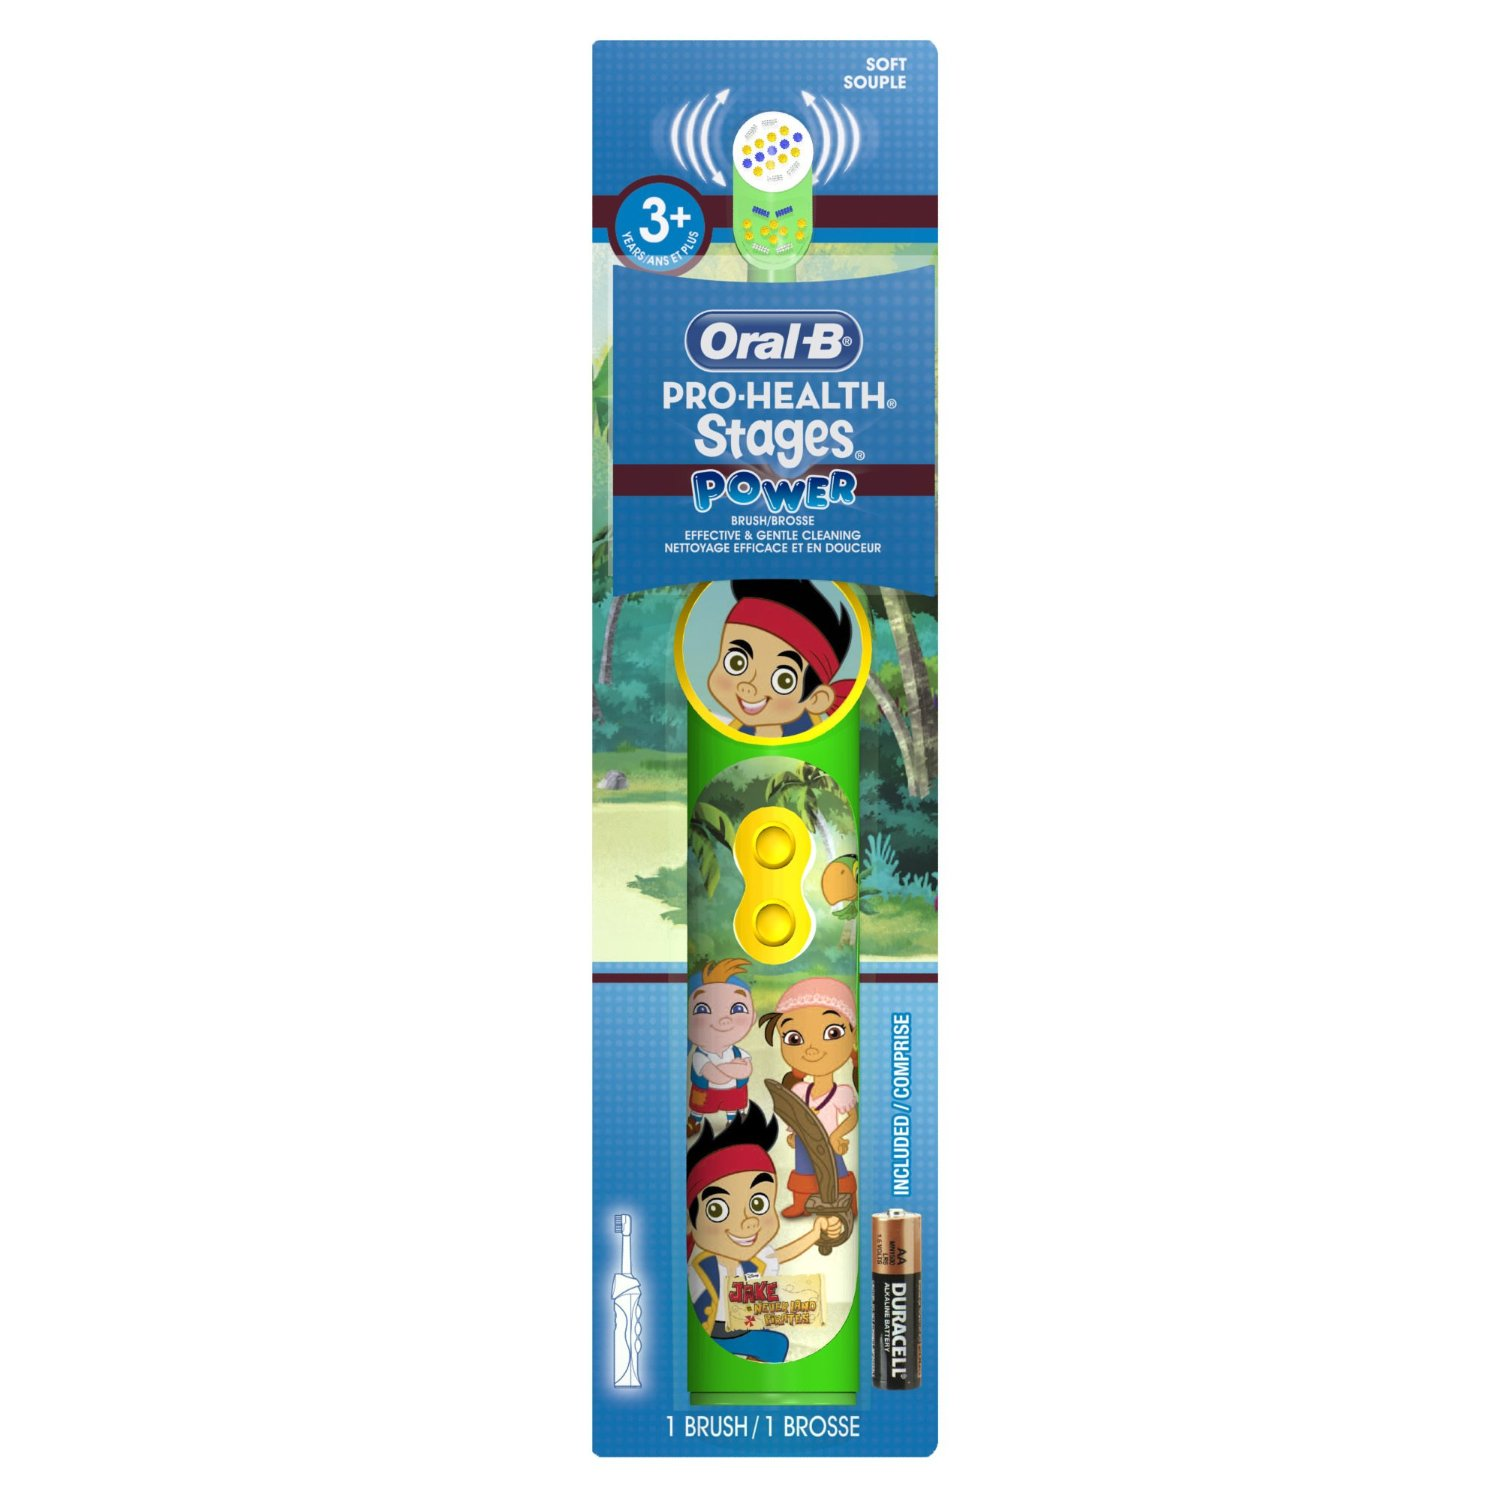 At Stage 2 of their evolving oral health, kids brushing from ages are just learning to brush as their baby teeth grow. Oral-B Pro-Health Stages My Friends Tigger and Pooh manual kids toothbrush is perfectly sized to fit the small mouth of your little one.